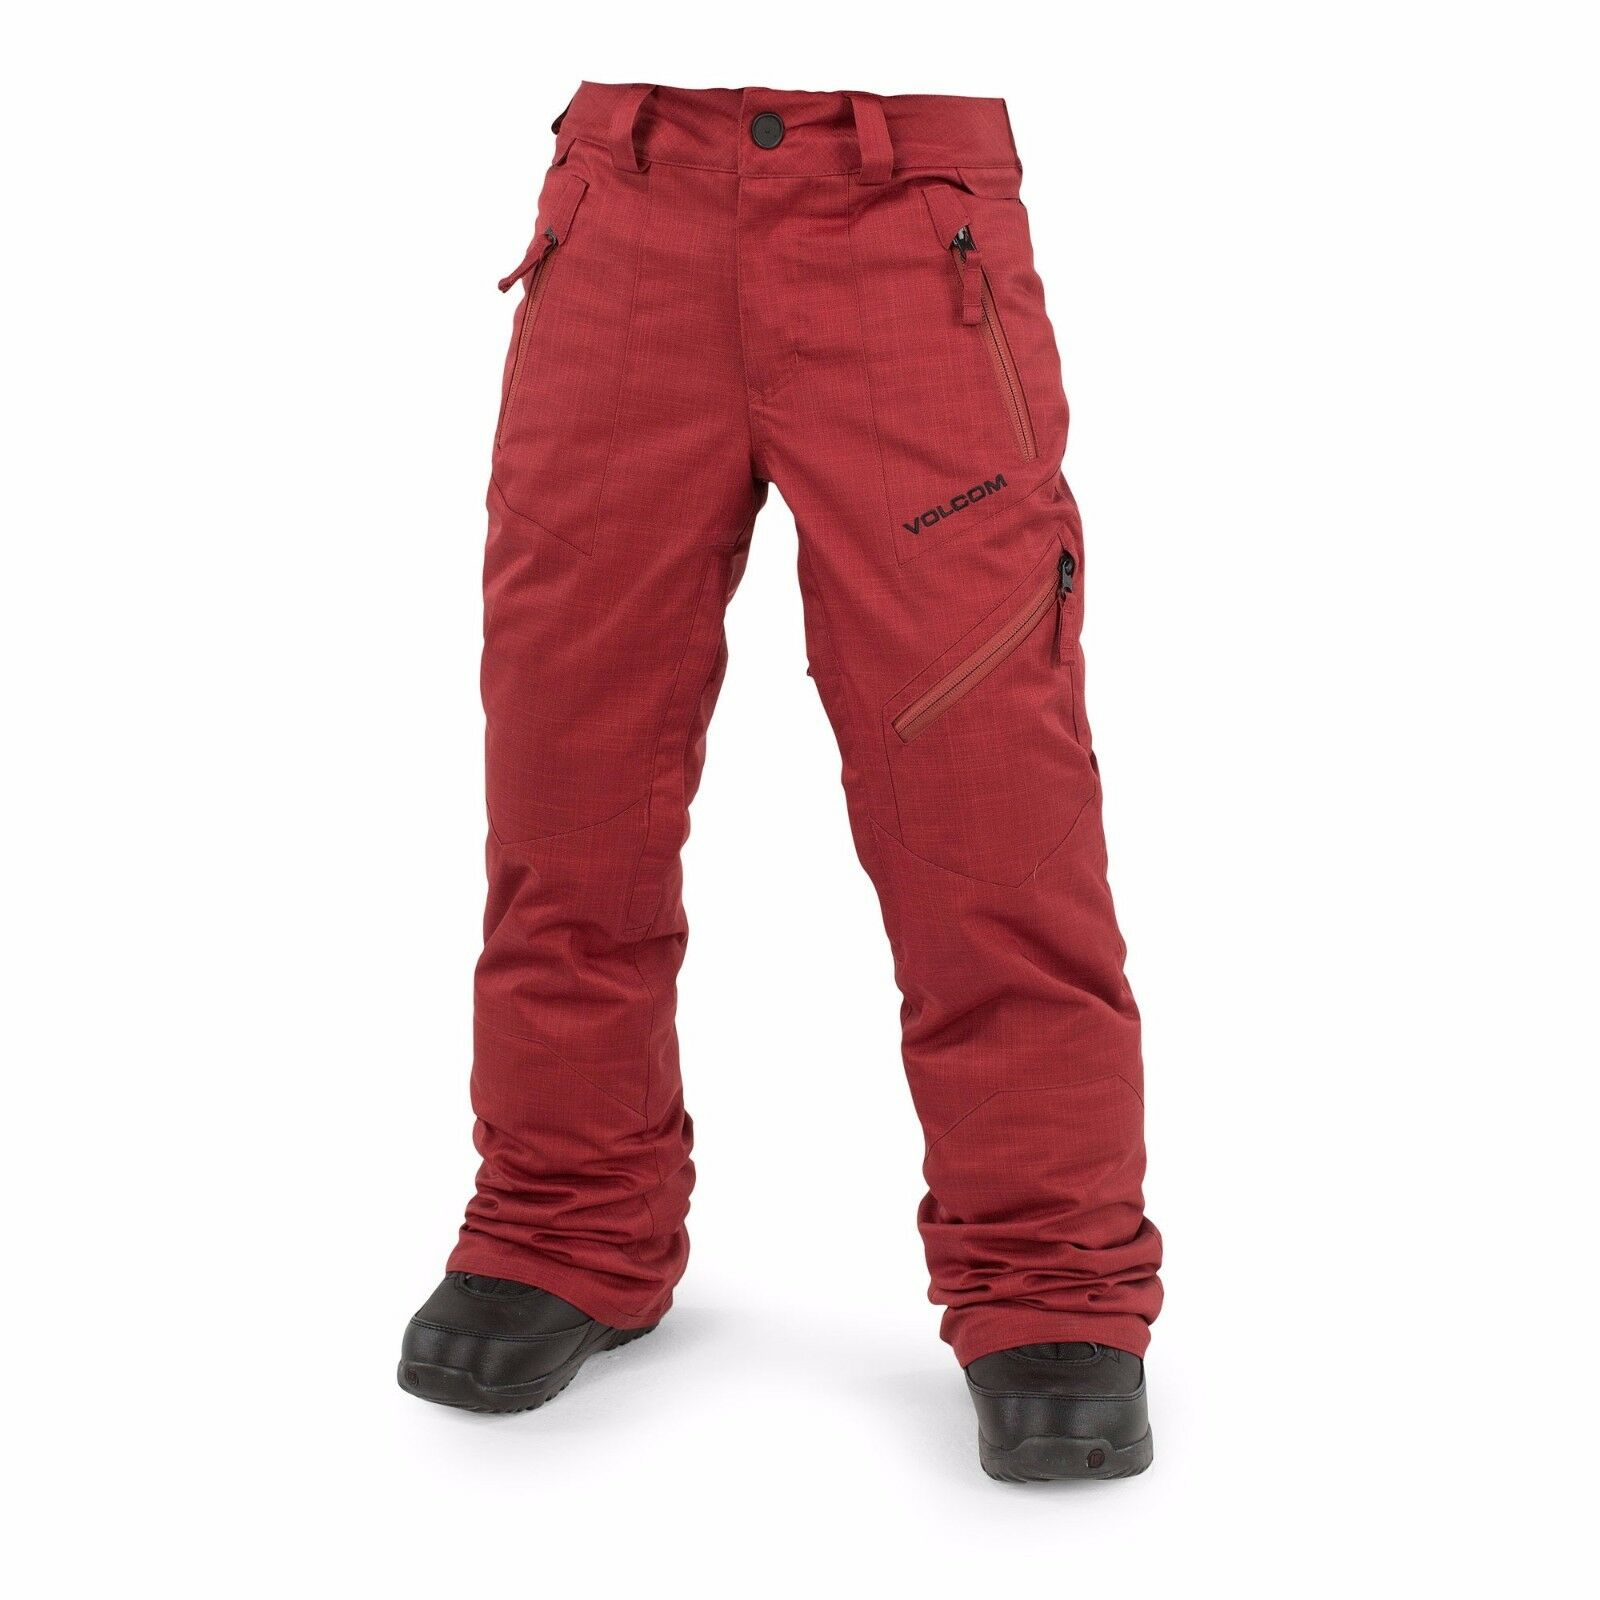 2017 NWT BOYS VOLCOM CASSIAR INSULATED SNOWBOARD PANTS  M blood red